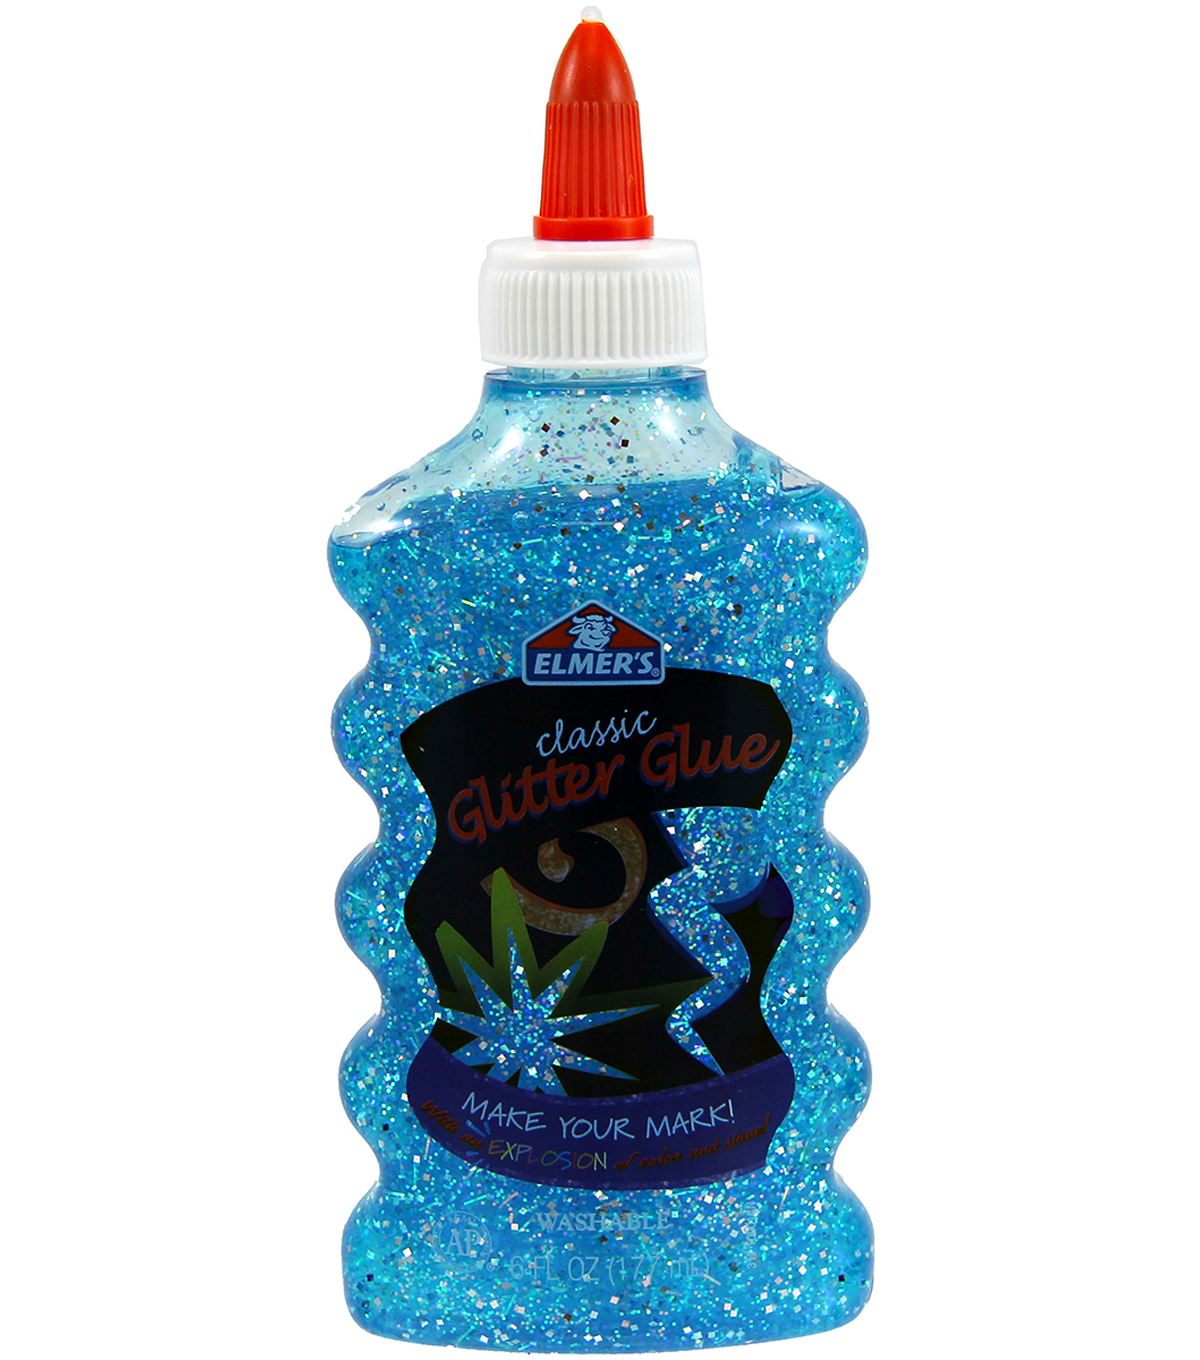 Elmers Glitter Glue 6oz Bottle